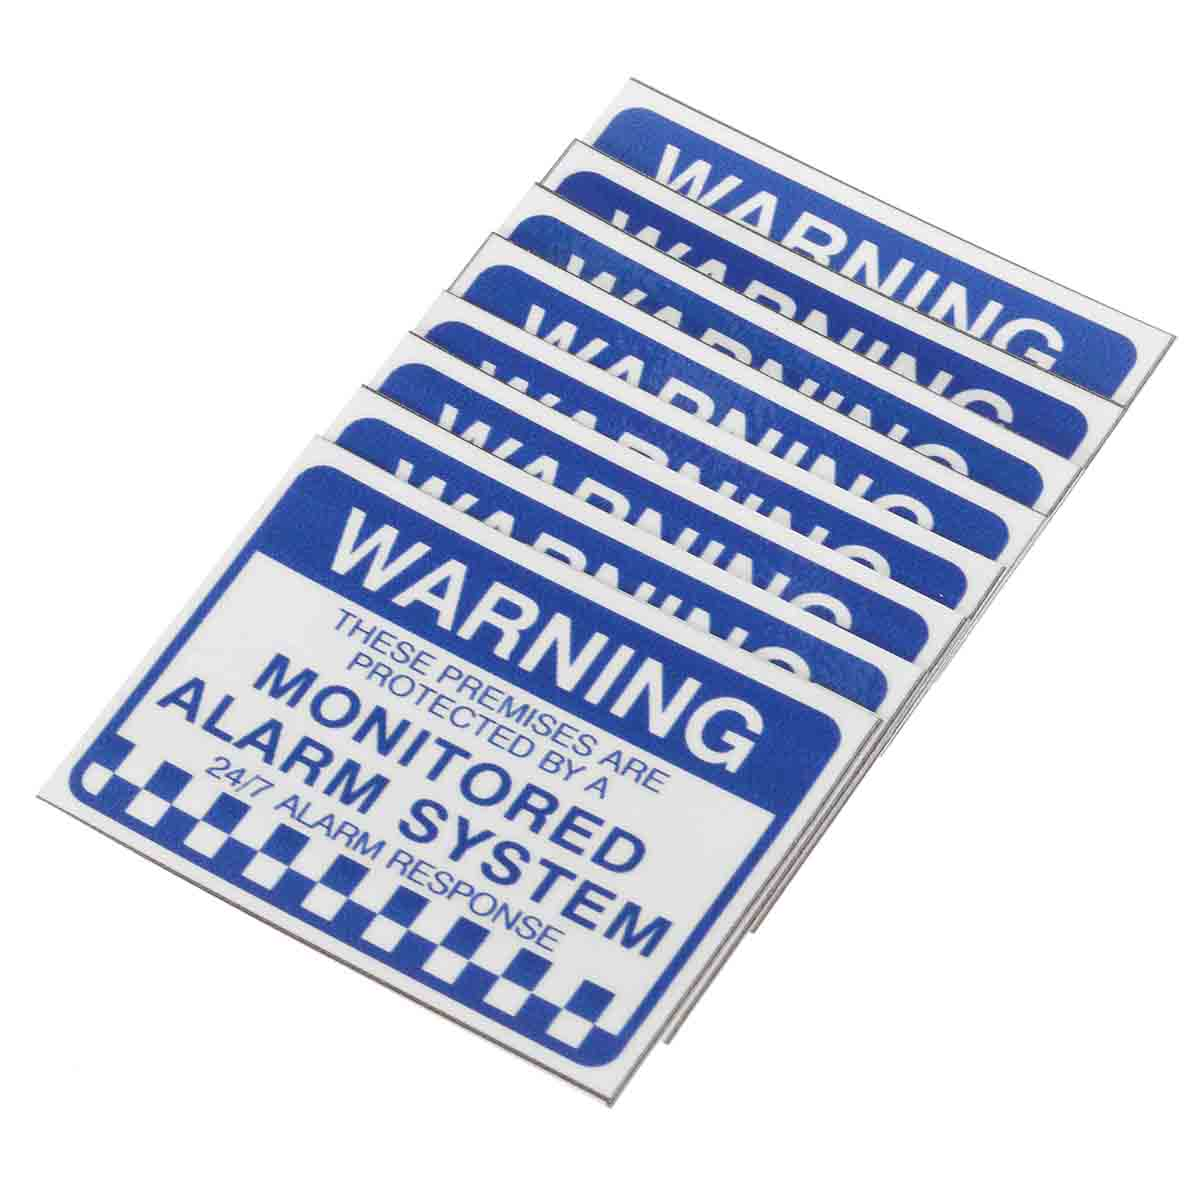 NEW Safurance 8x Alarm System Monitored Warning Security Stickers Waterproof Security Sign Home Safety